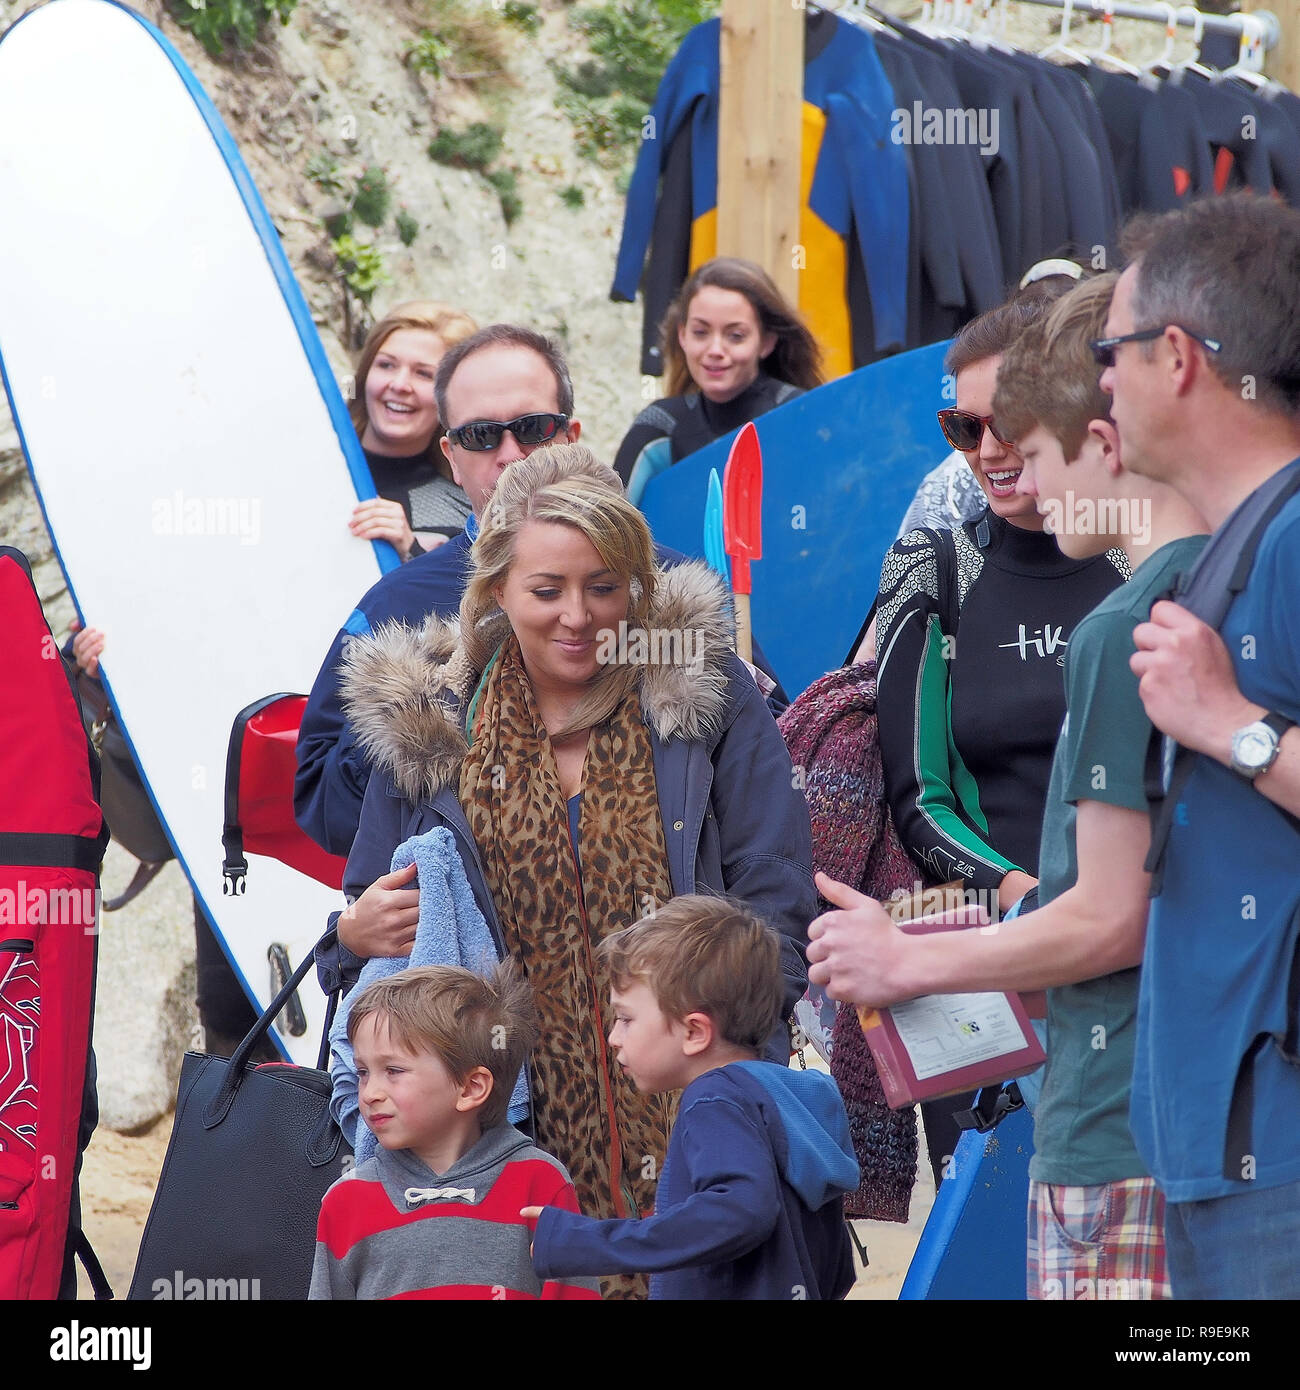 Watergate Bay Summer Beach crowds and vibe sunshine and surfing - Stock Image